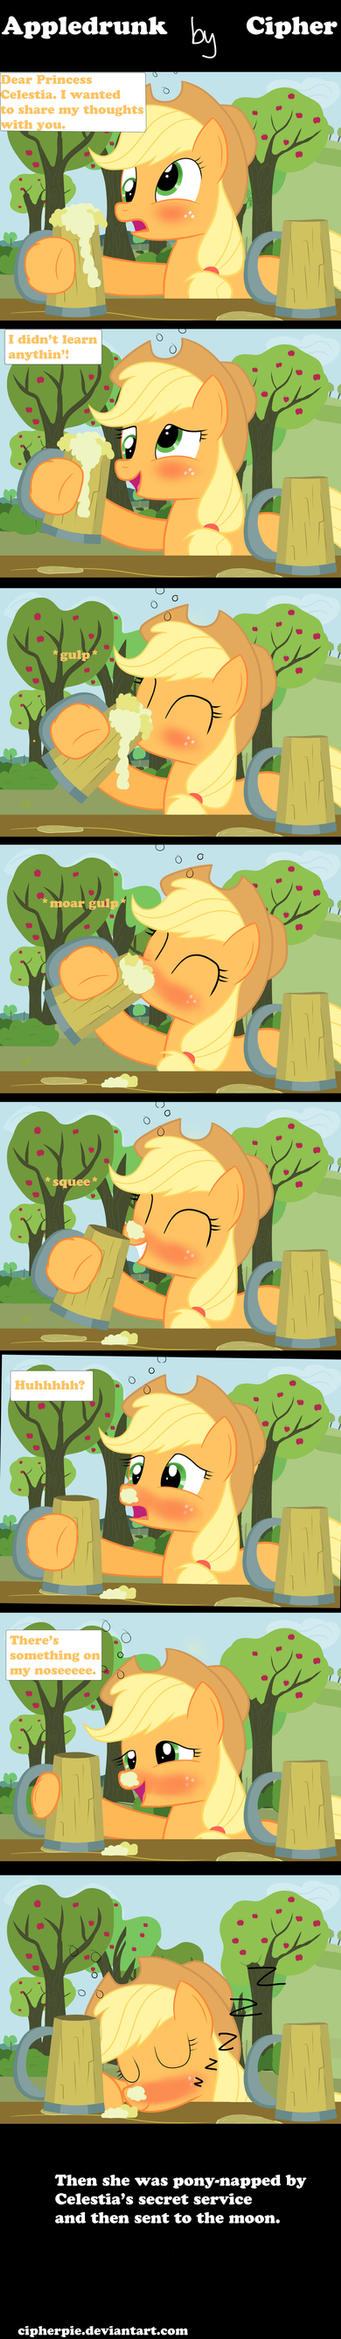 Appledrunk by cipherpie